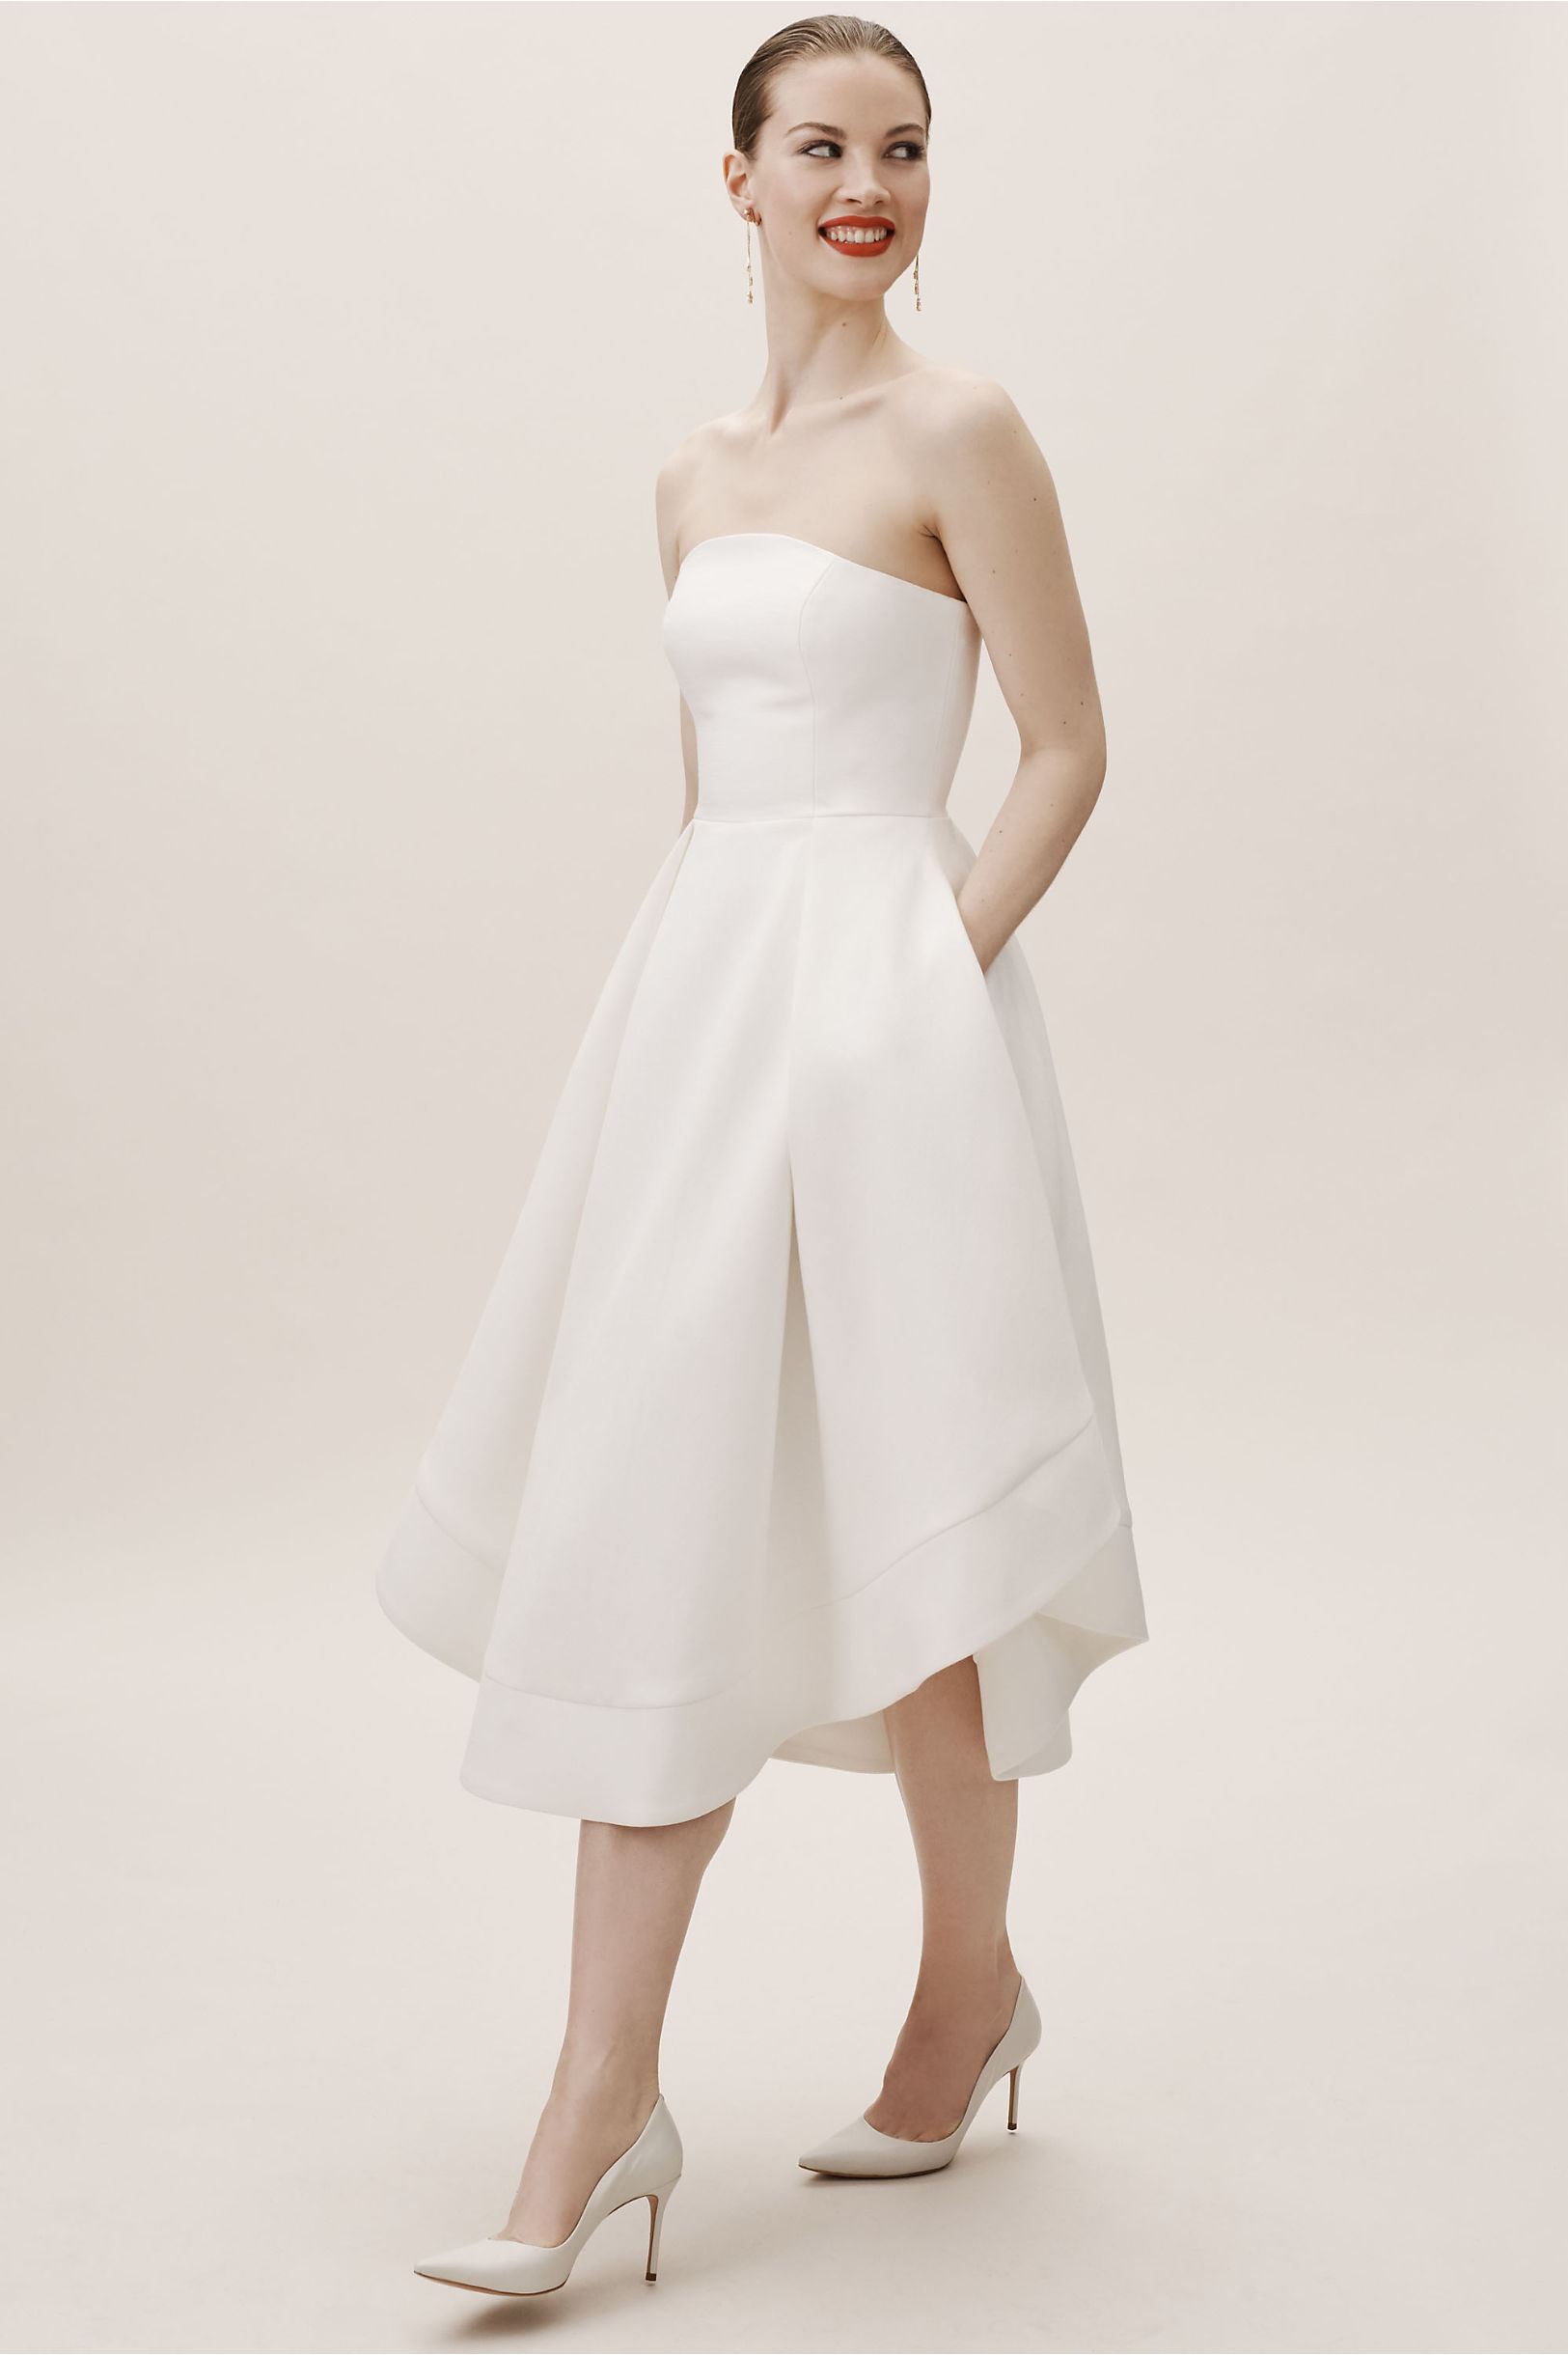 woman wearing a short strapless simple wedding dress